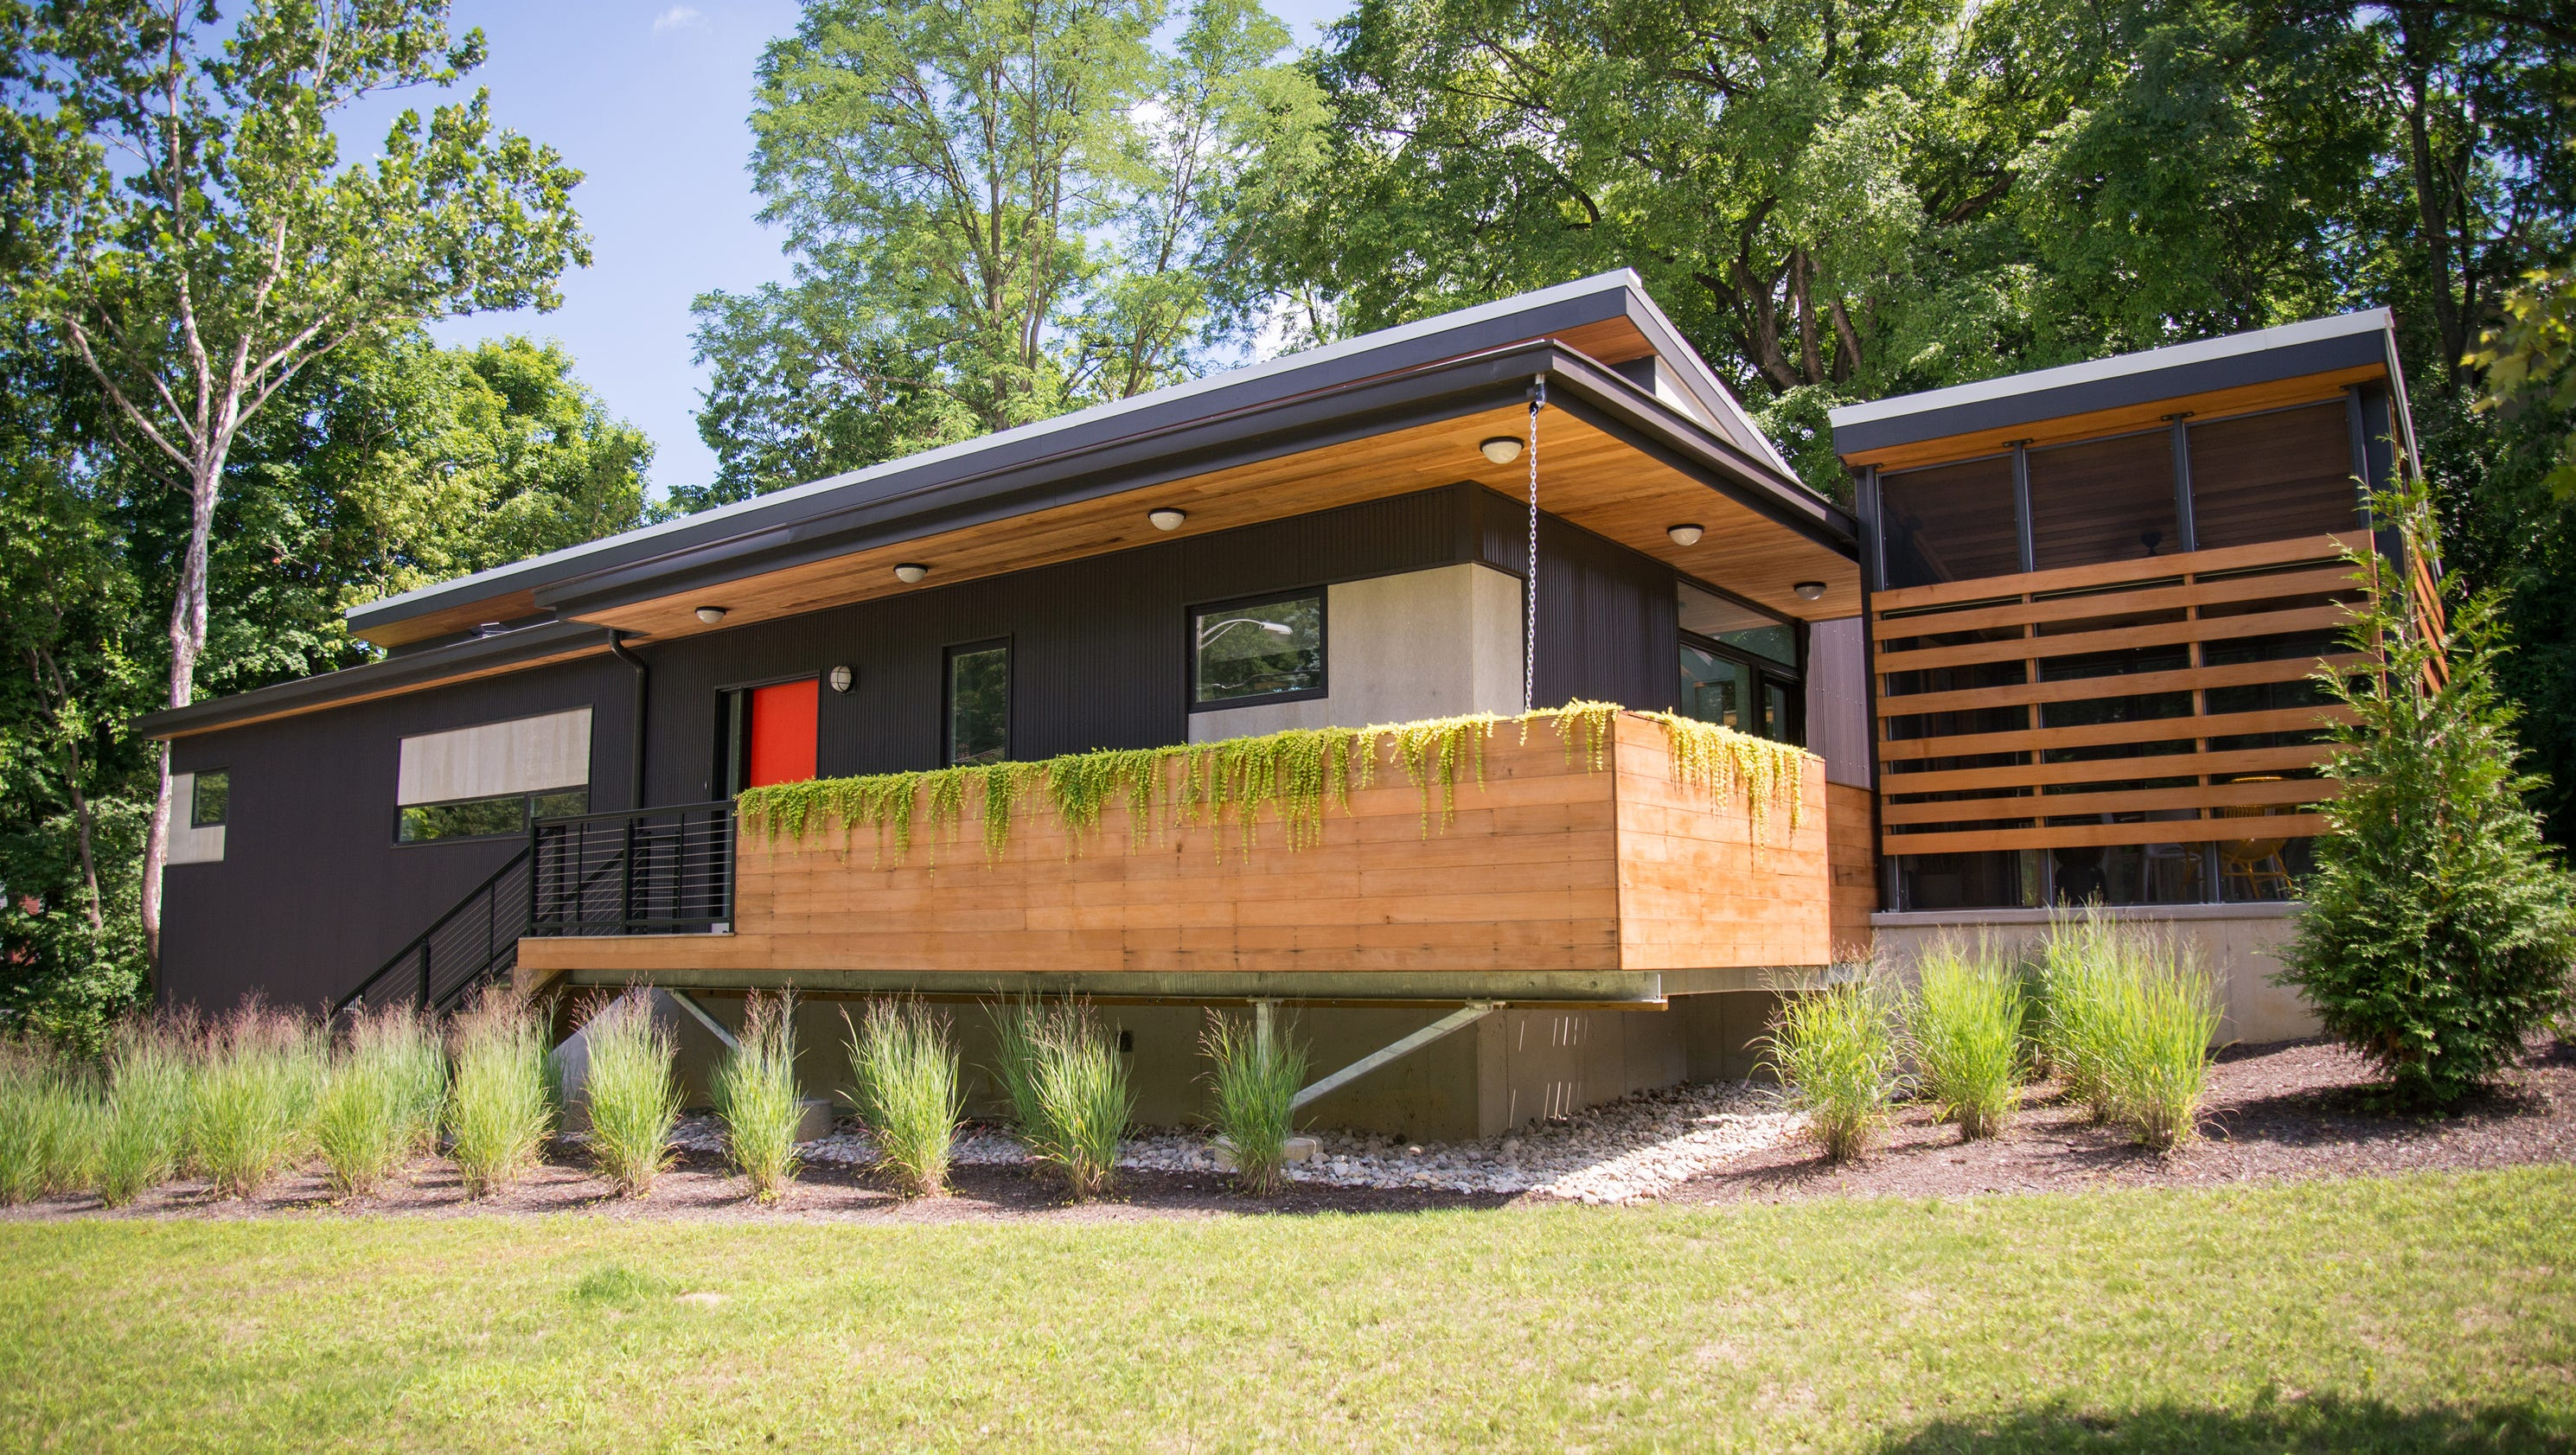 Cool homes minimalist modern goes green in northside for Northside house